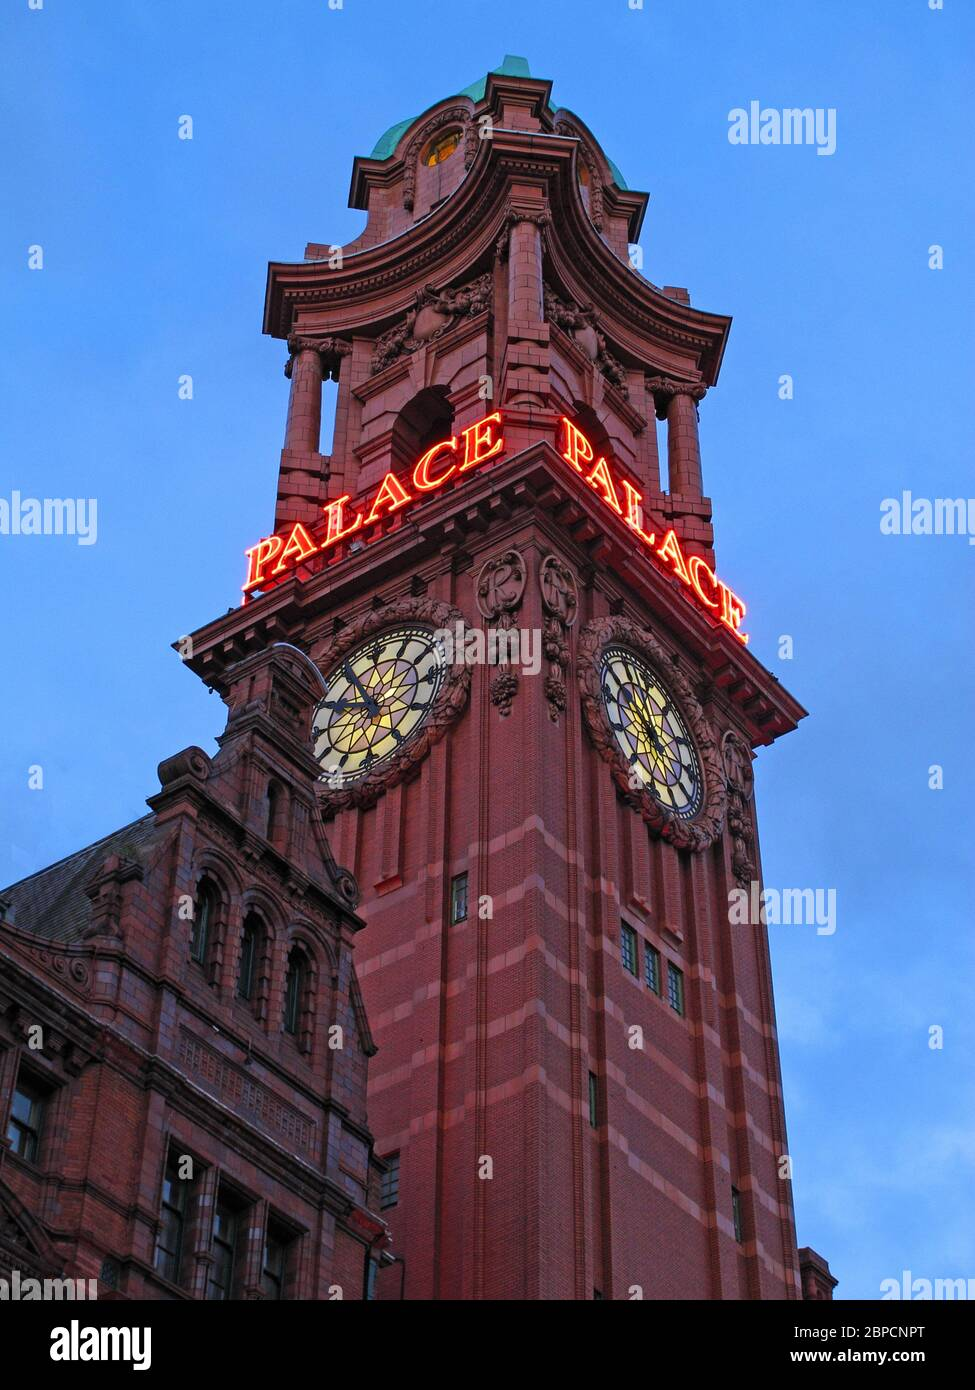 HotpixUK,@HotpixUK,GoTonySmith,iconic,Manchester,old,Victorian,Insurance,company,building,neon,sign,clocktower,Clock tower,history,historic,greater Manchester,North West,The Palace Hotel,ex-Refuge Insurance building,Oxford Road,Lancashire,England,UK,red brick,M60